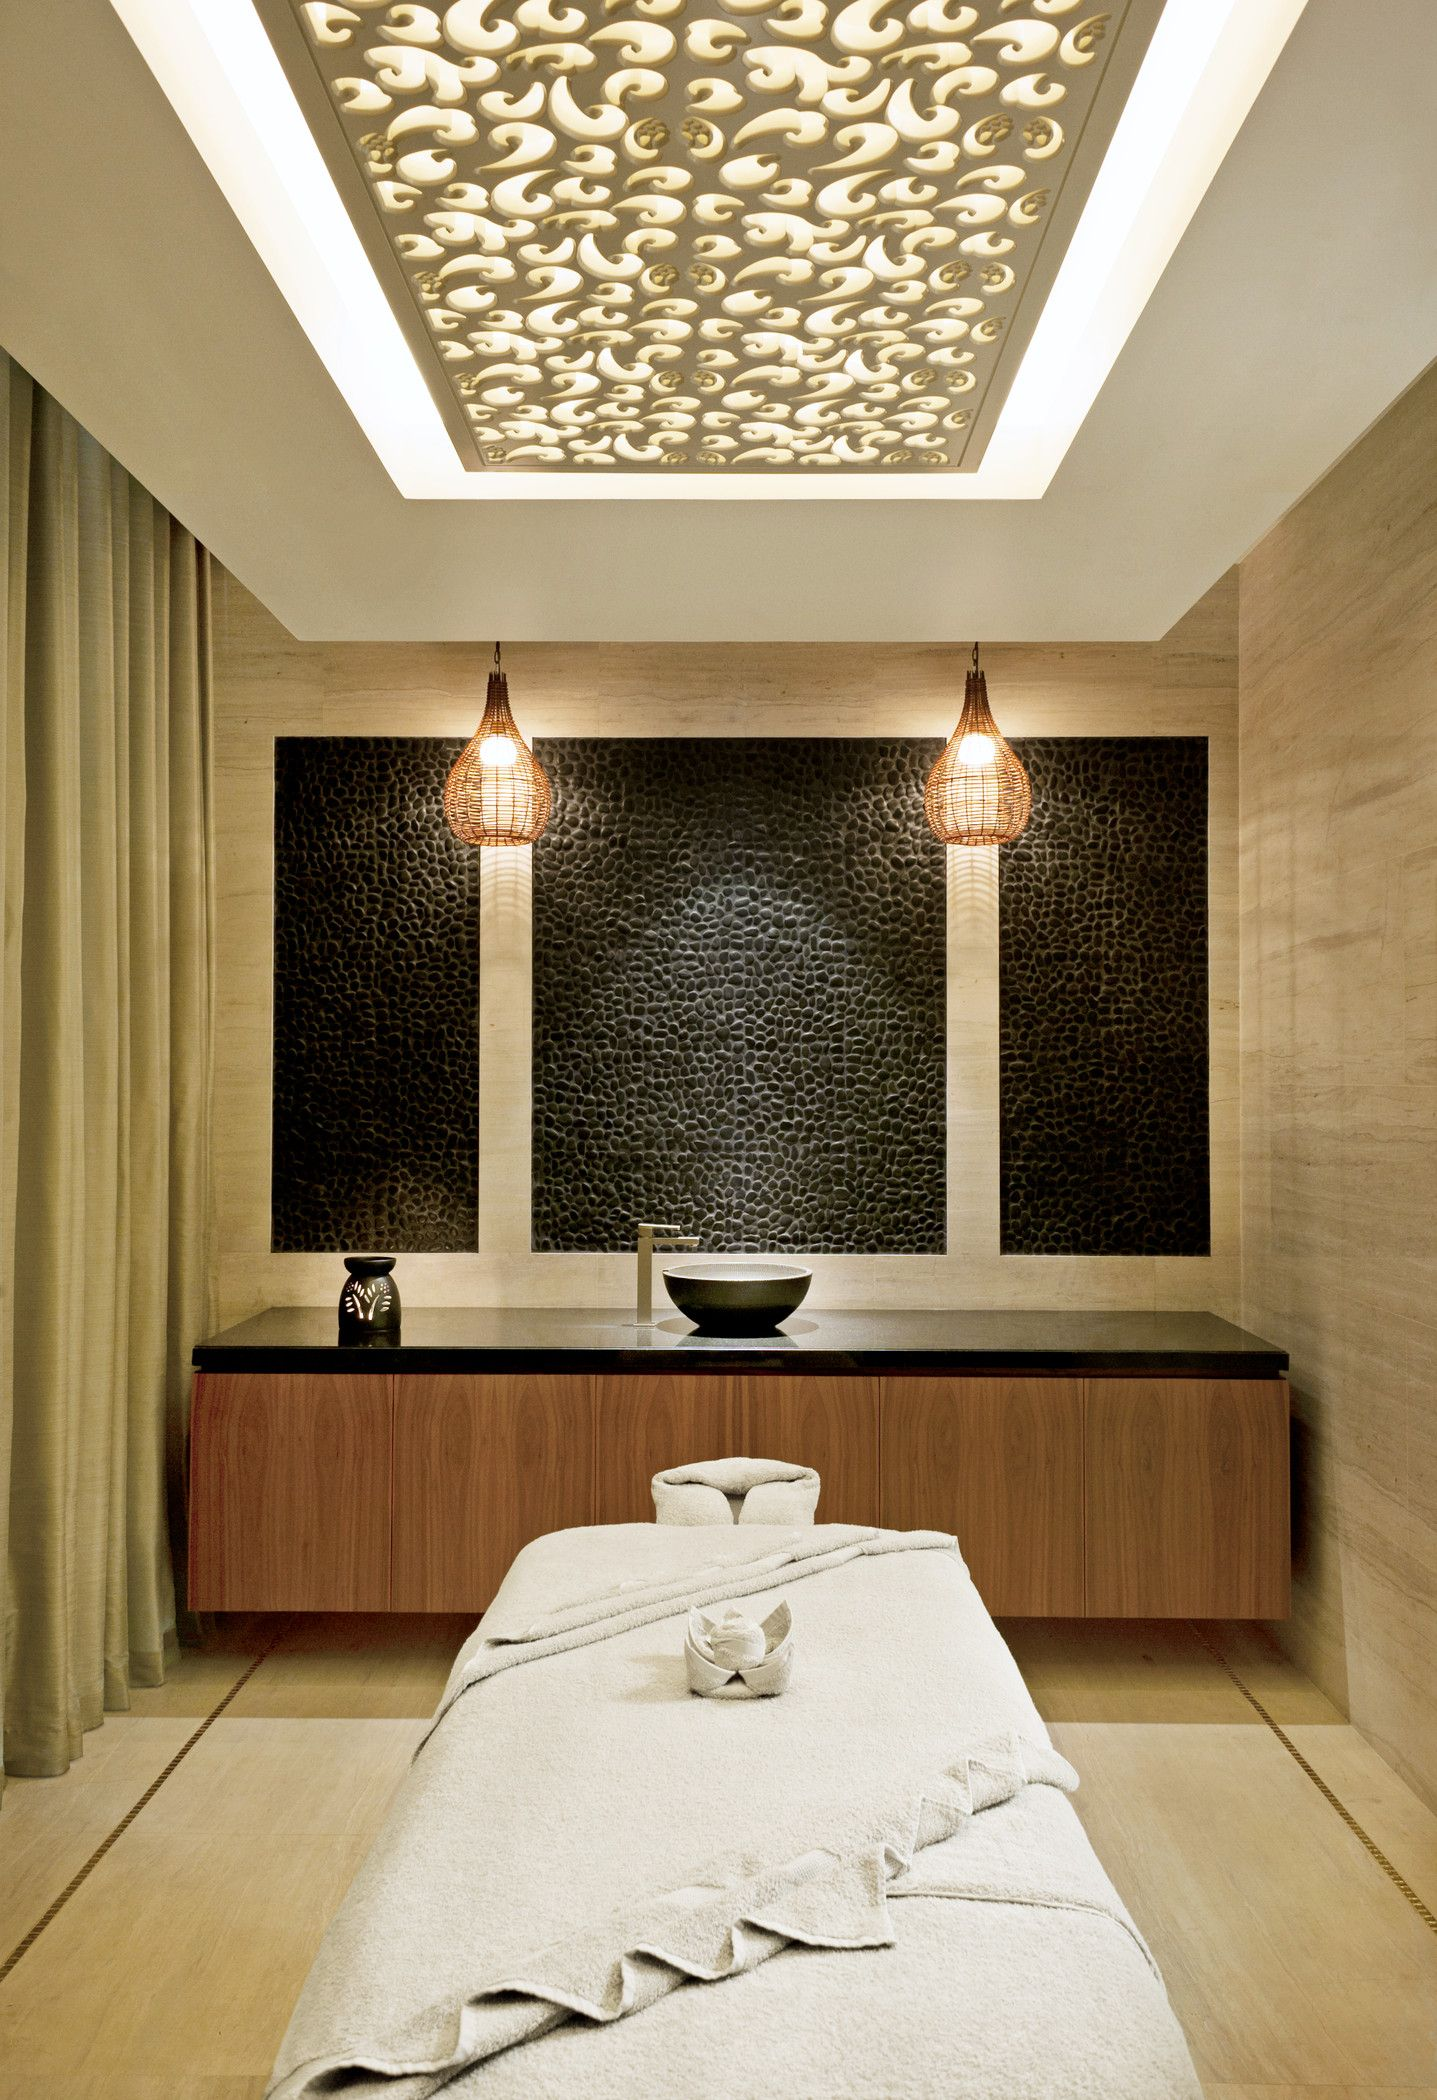 Cambodian spa men 39 s treatment room google search c spa for Spa treatment room interior design